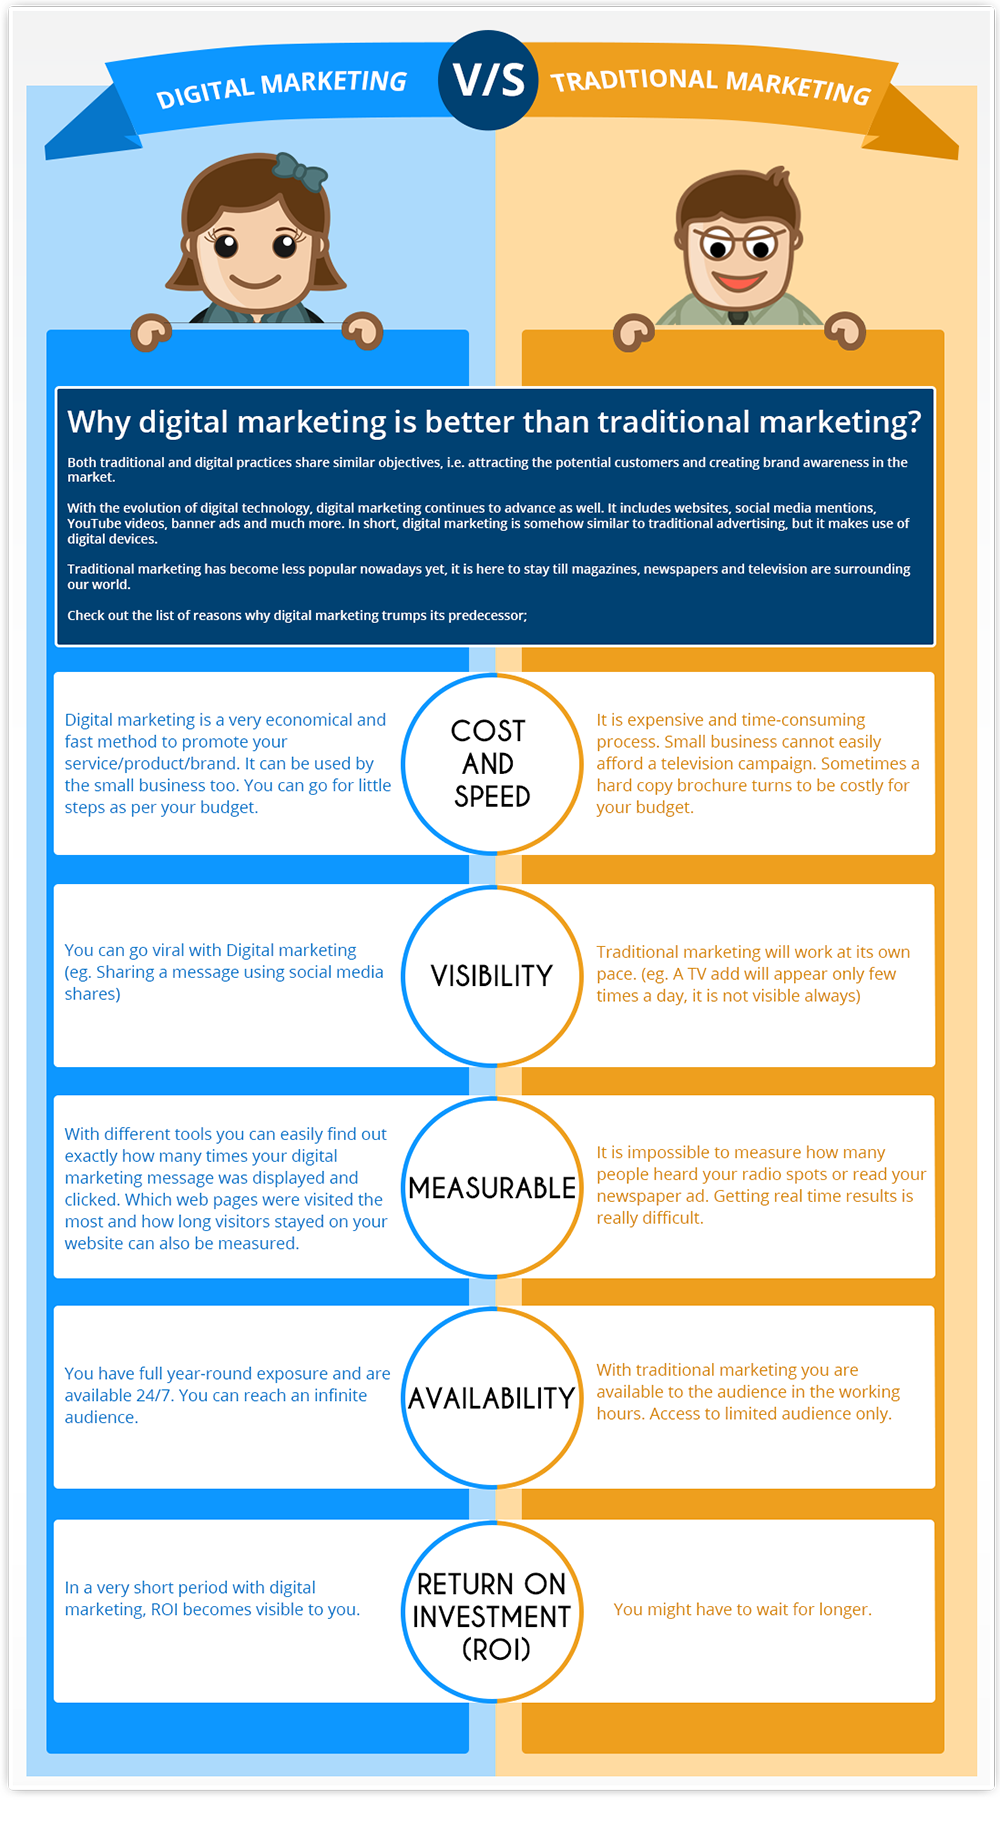 digital marketing vs traditional marketing?